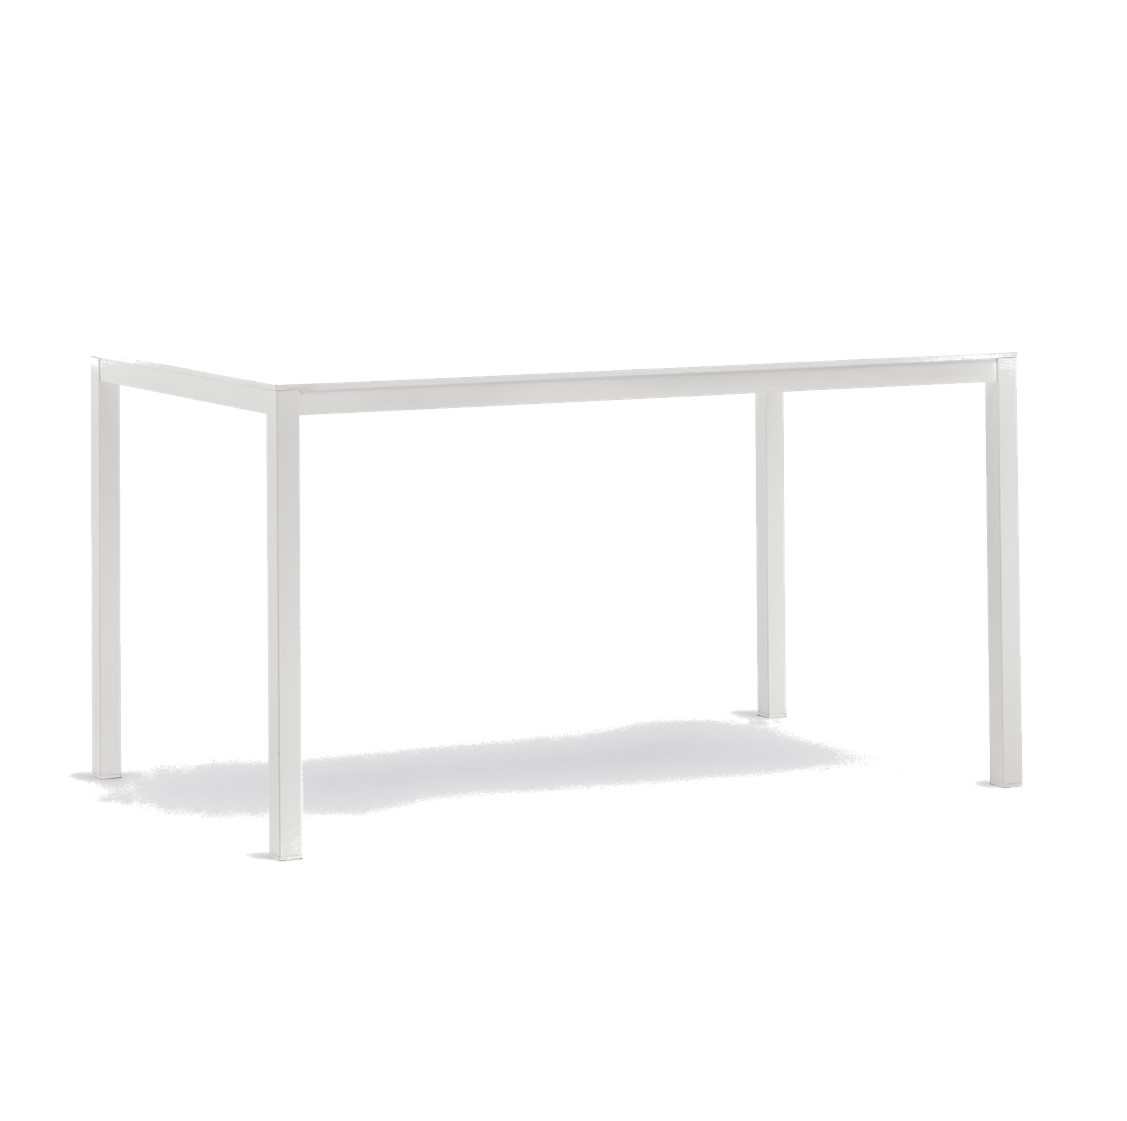 Kuadro SK Rectangle Table With Legs DeFrae Contract Furniture White